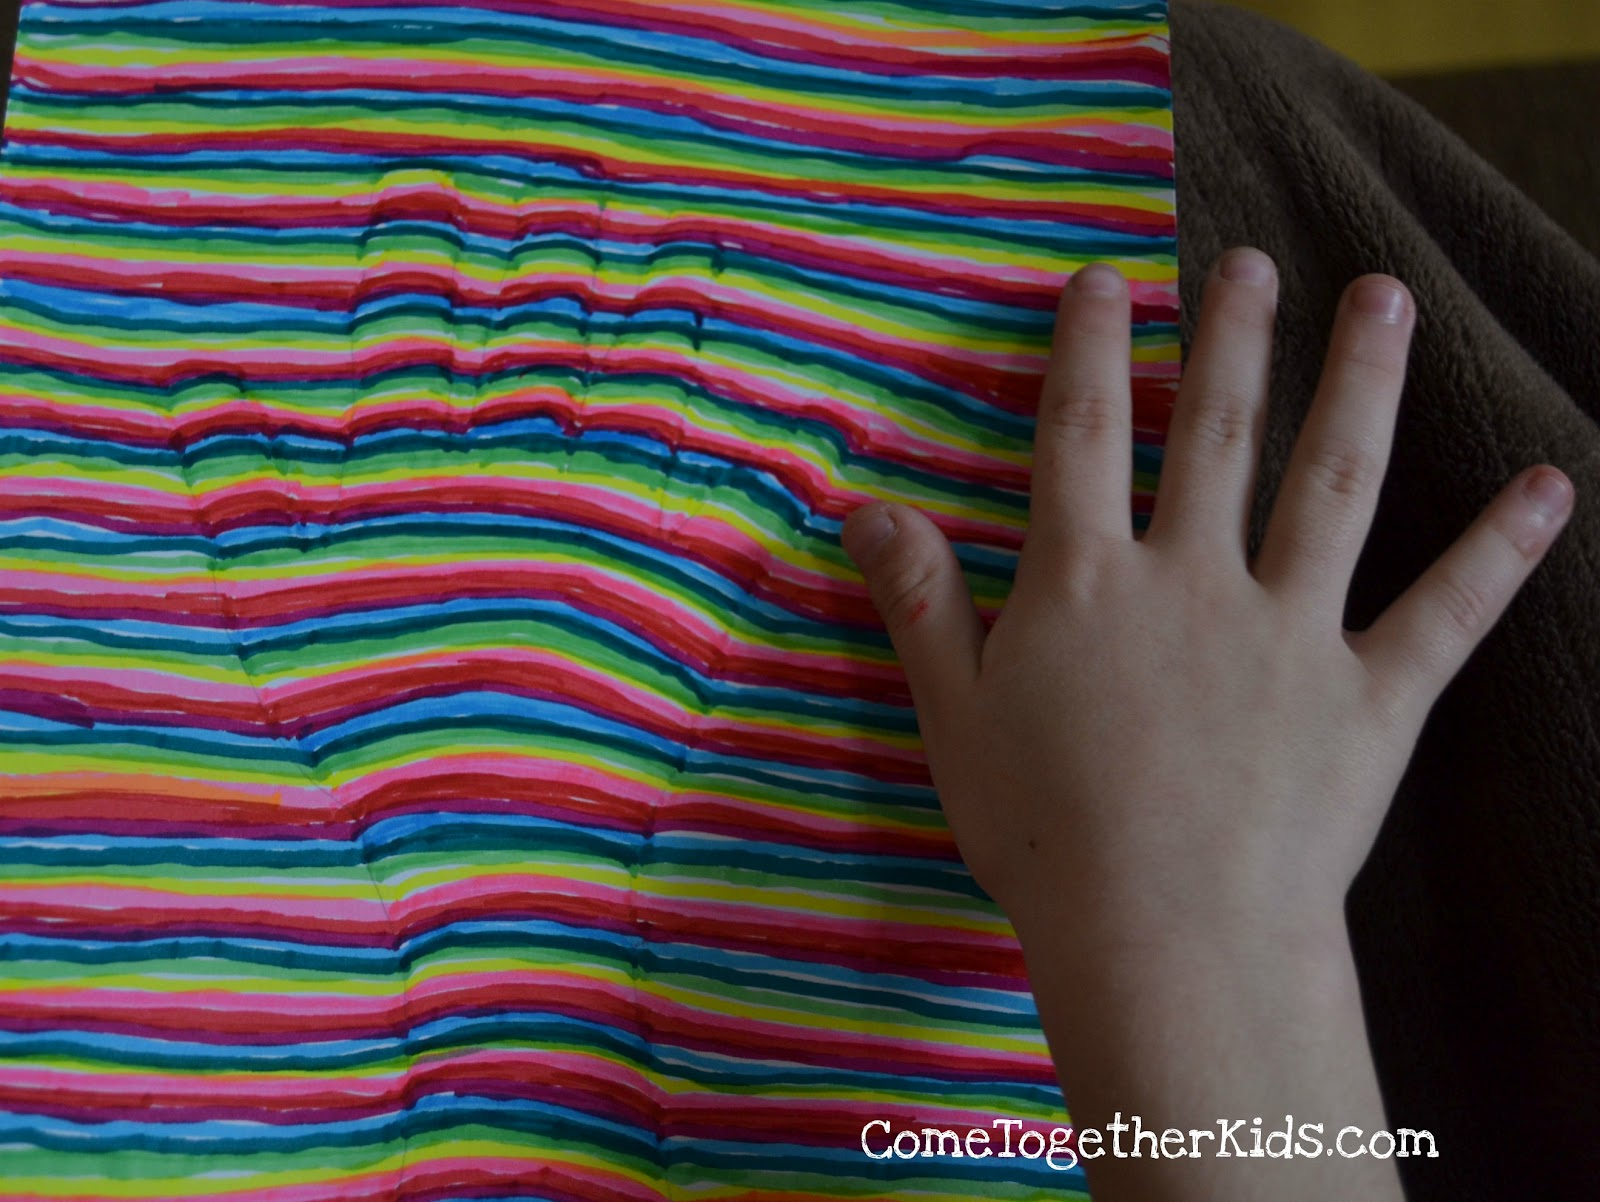 Come Together Kids: Optical Illusion Handprint